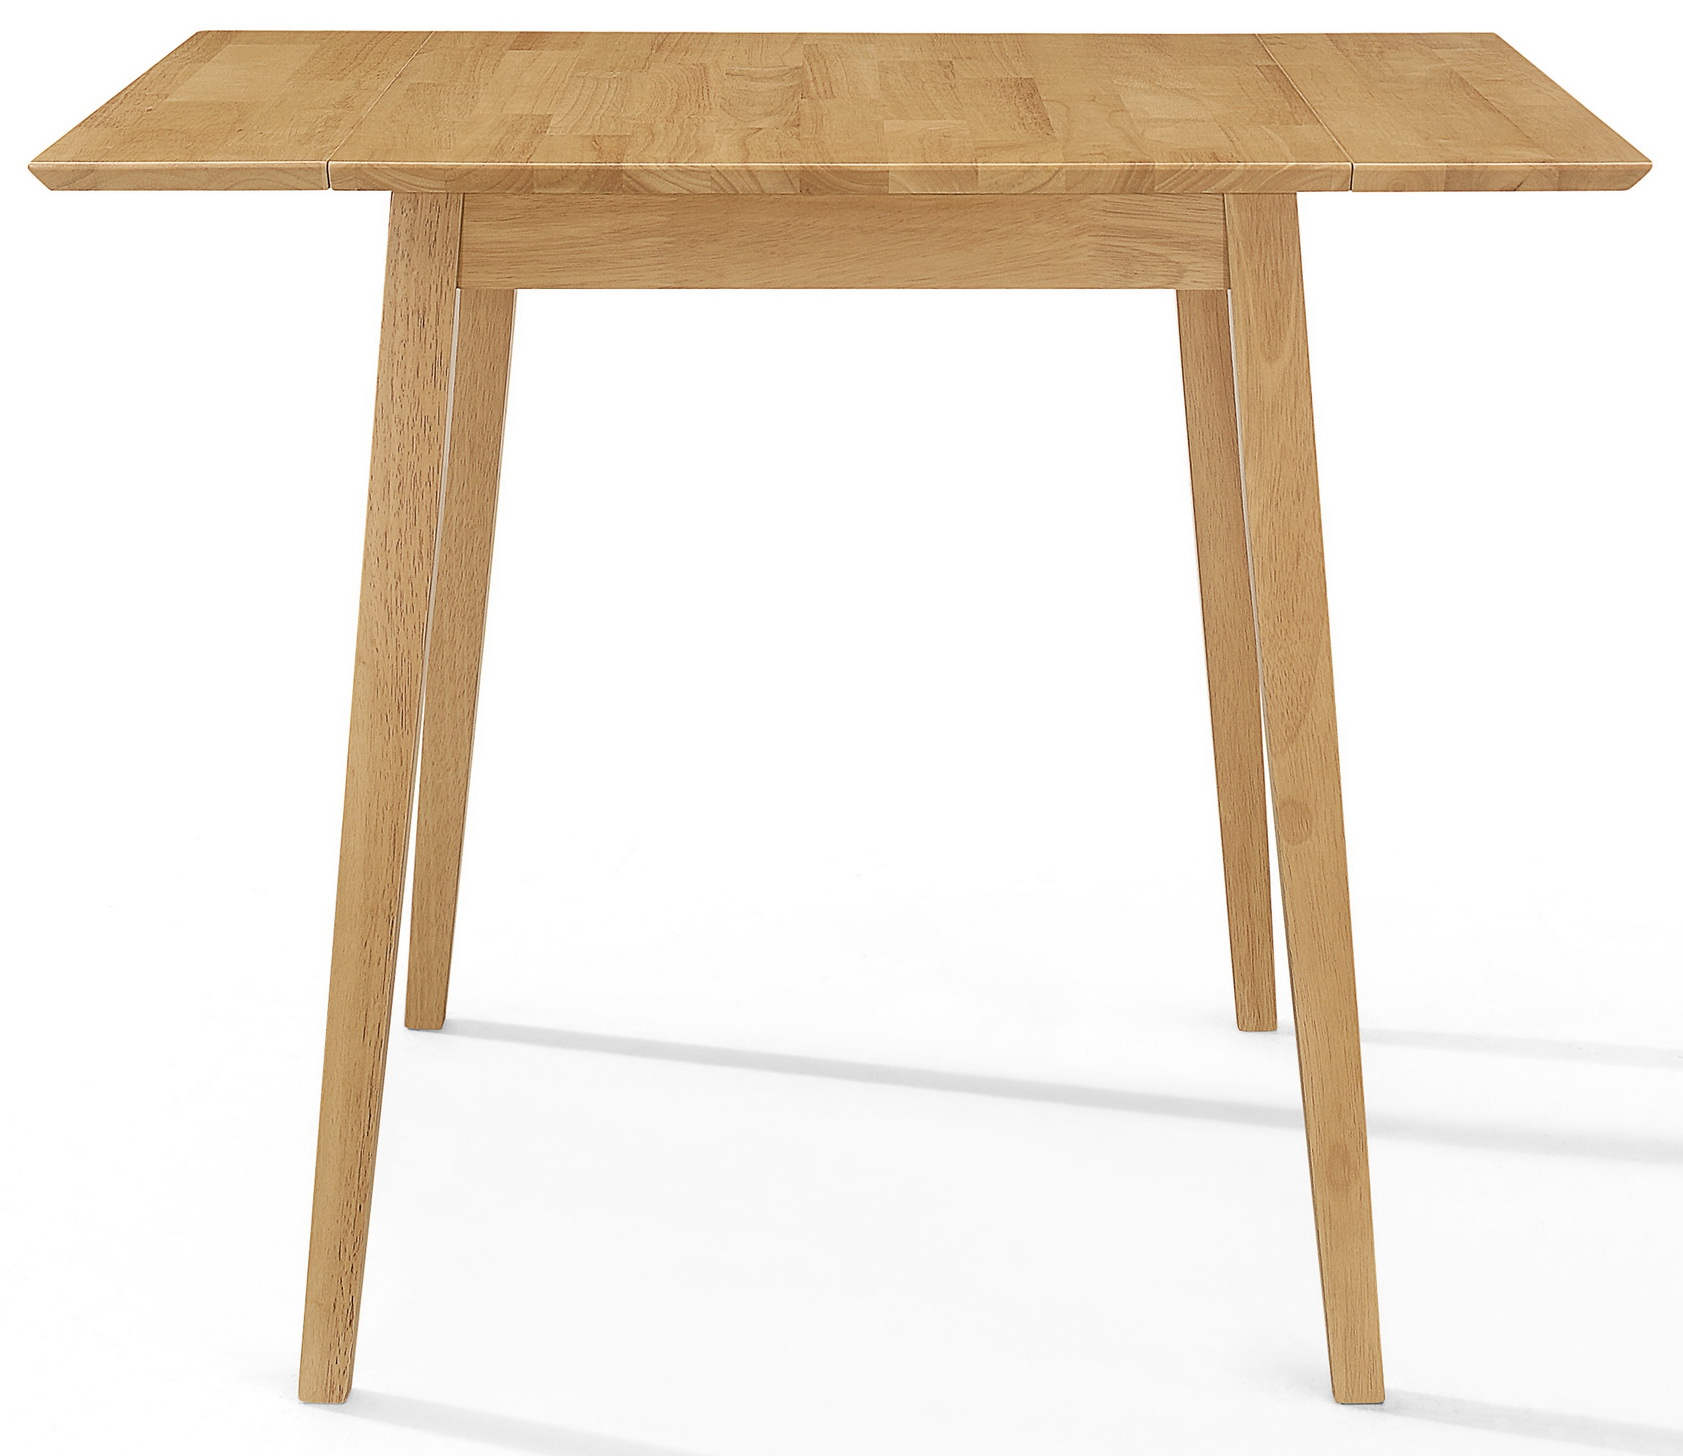 Small Wooden Kitchen Drop Leaf Dining Table In Oak Finish 100 Solid Wood Ebay